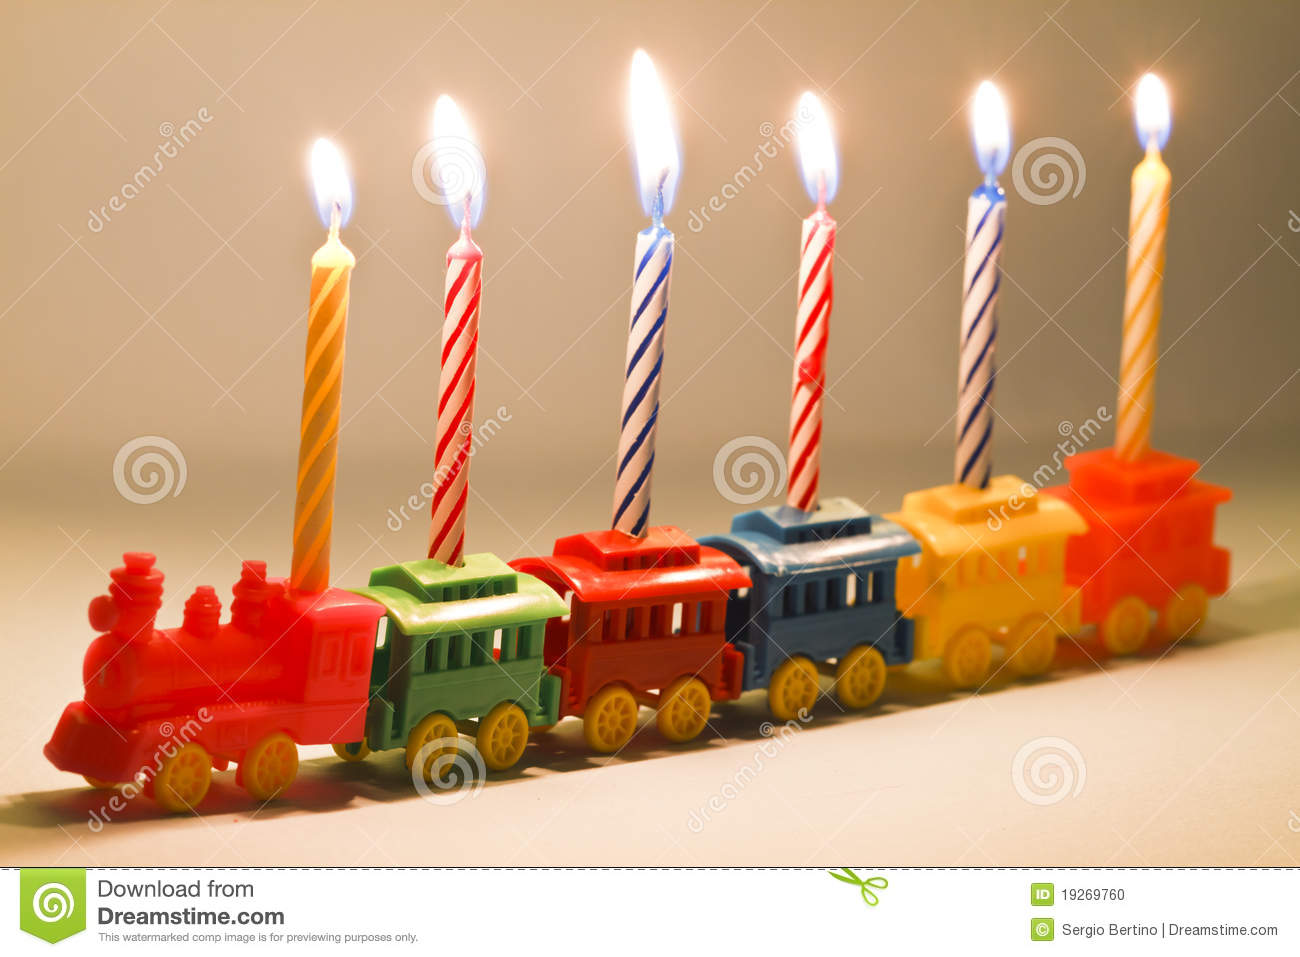 Plastic Toy Train Carrying Six Lit Striped Birthday Candles